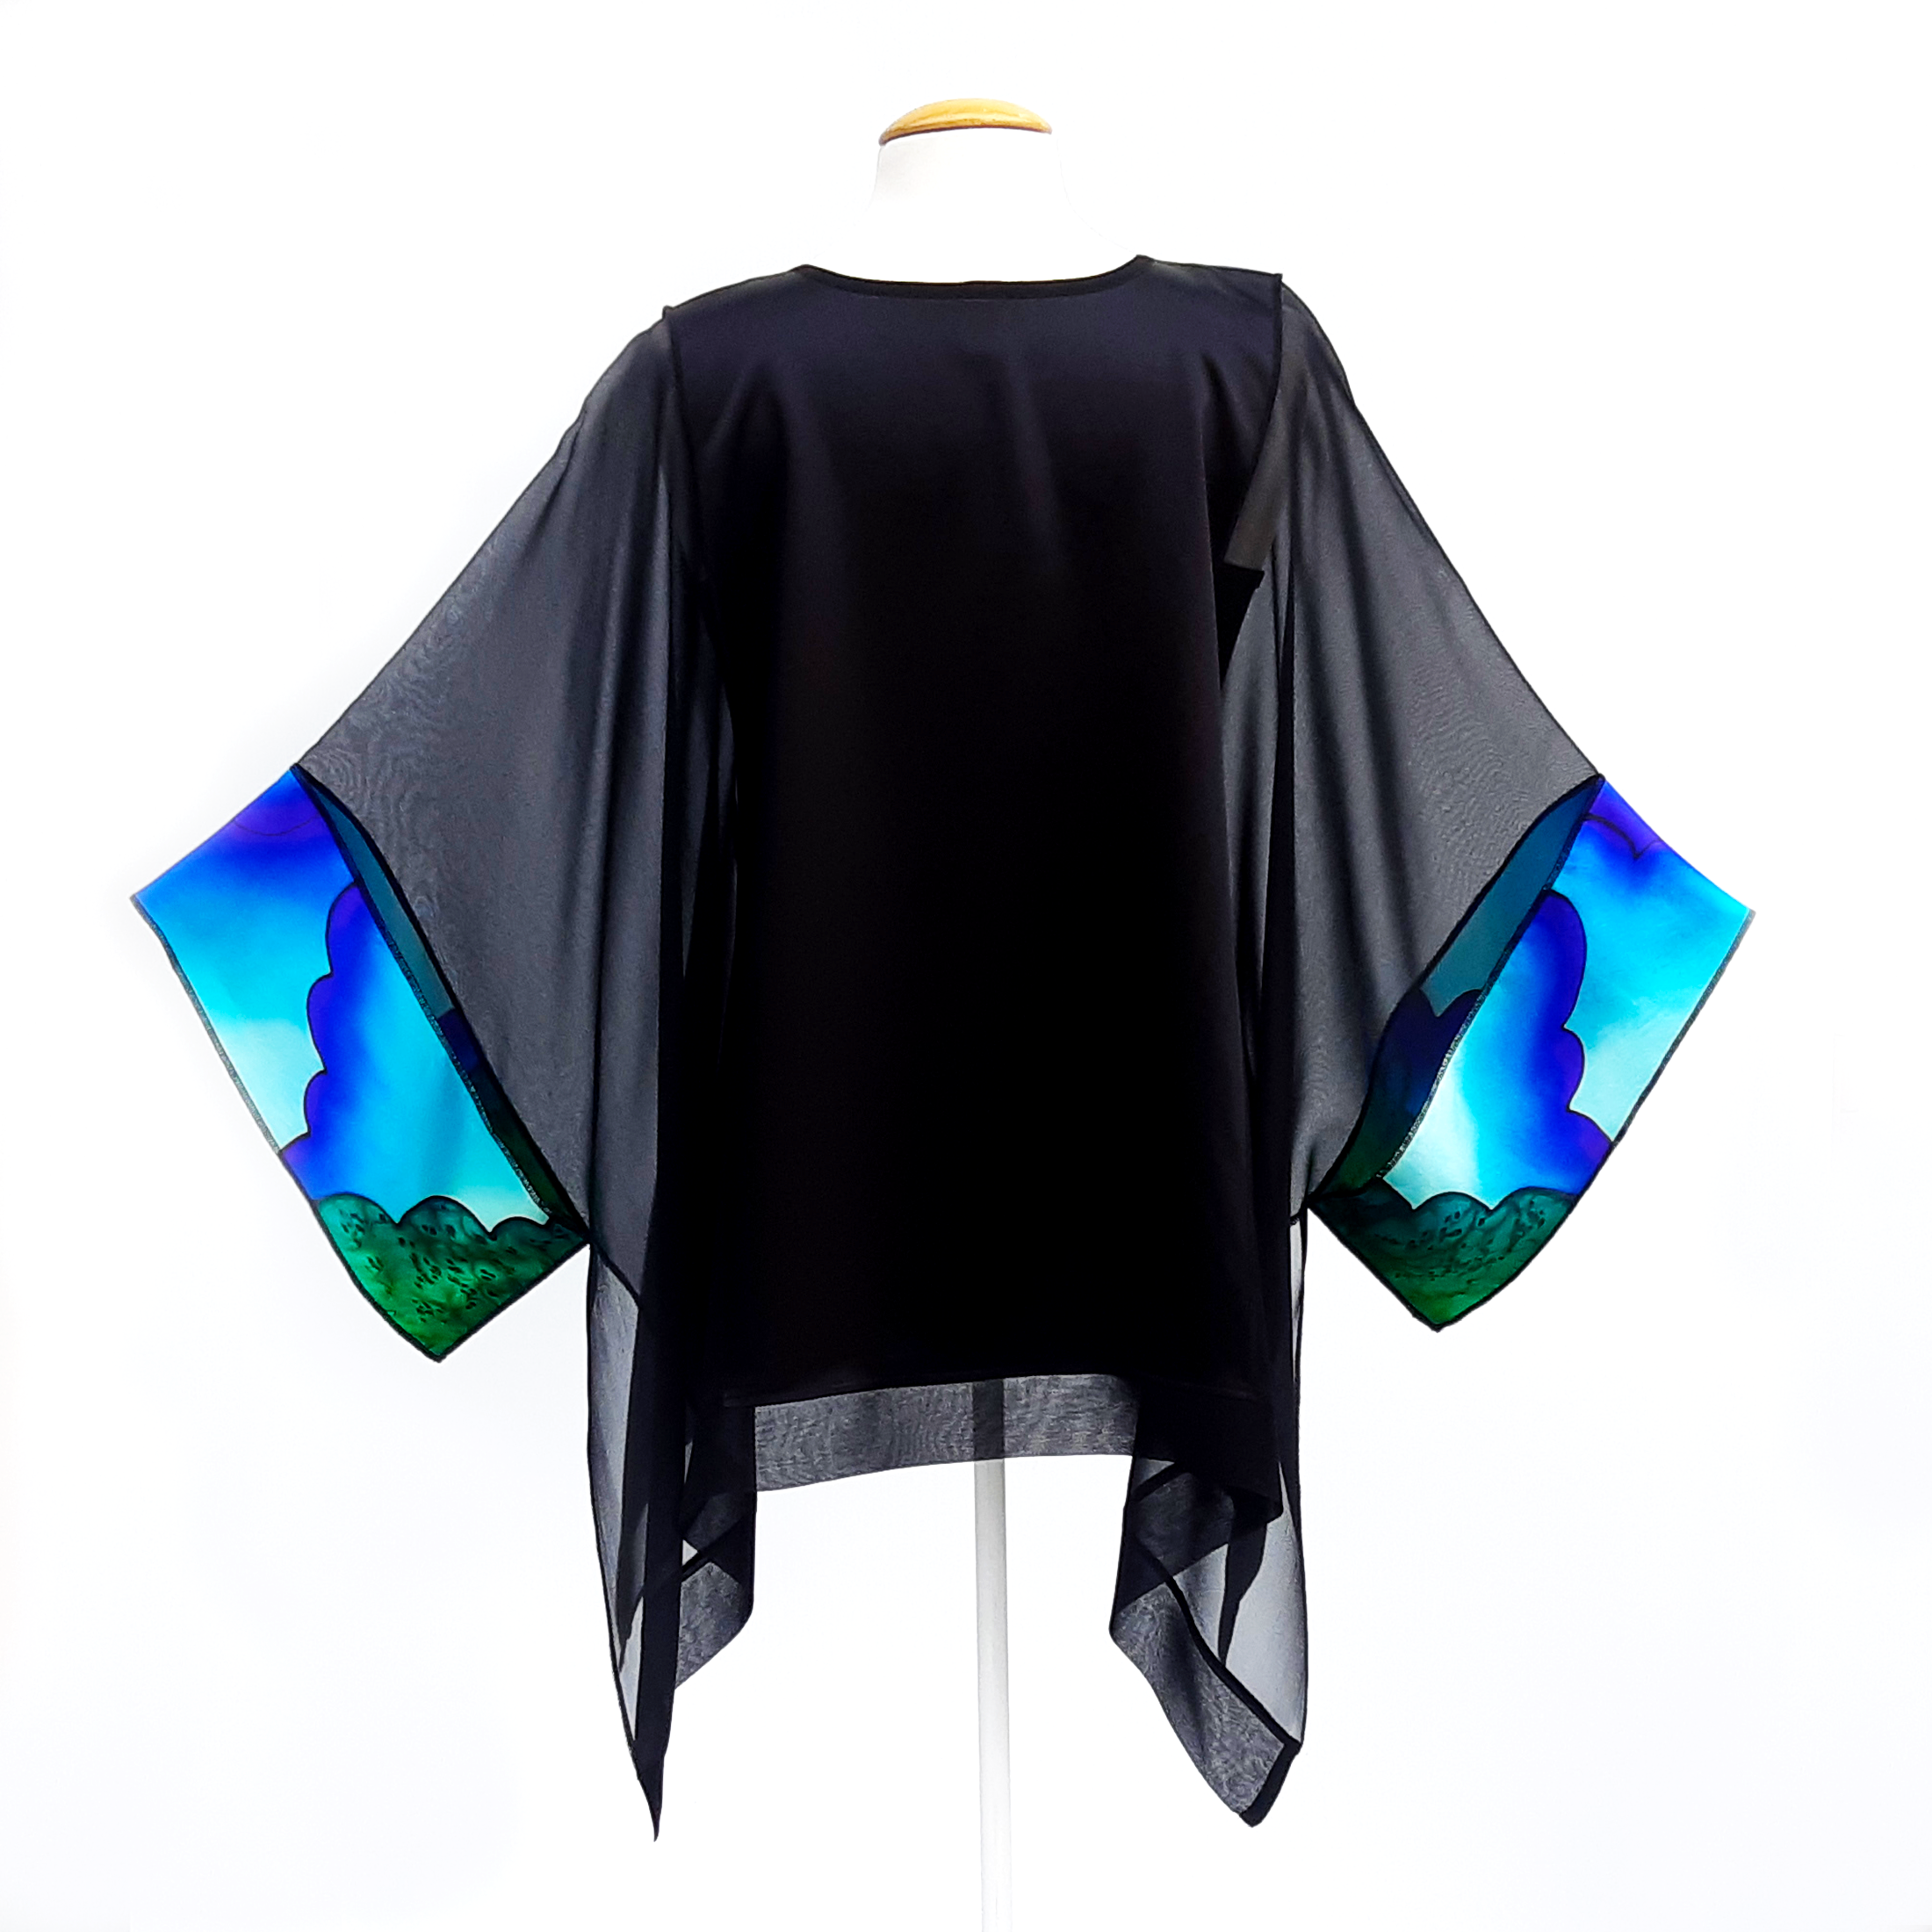 pure silk black caftan top made in Canada hand painted by Lynne Kiel